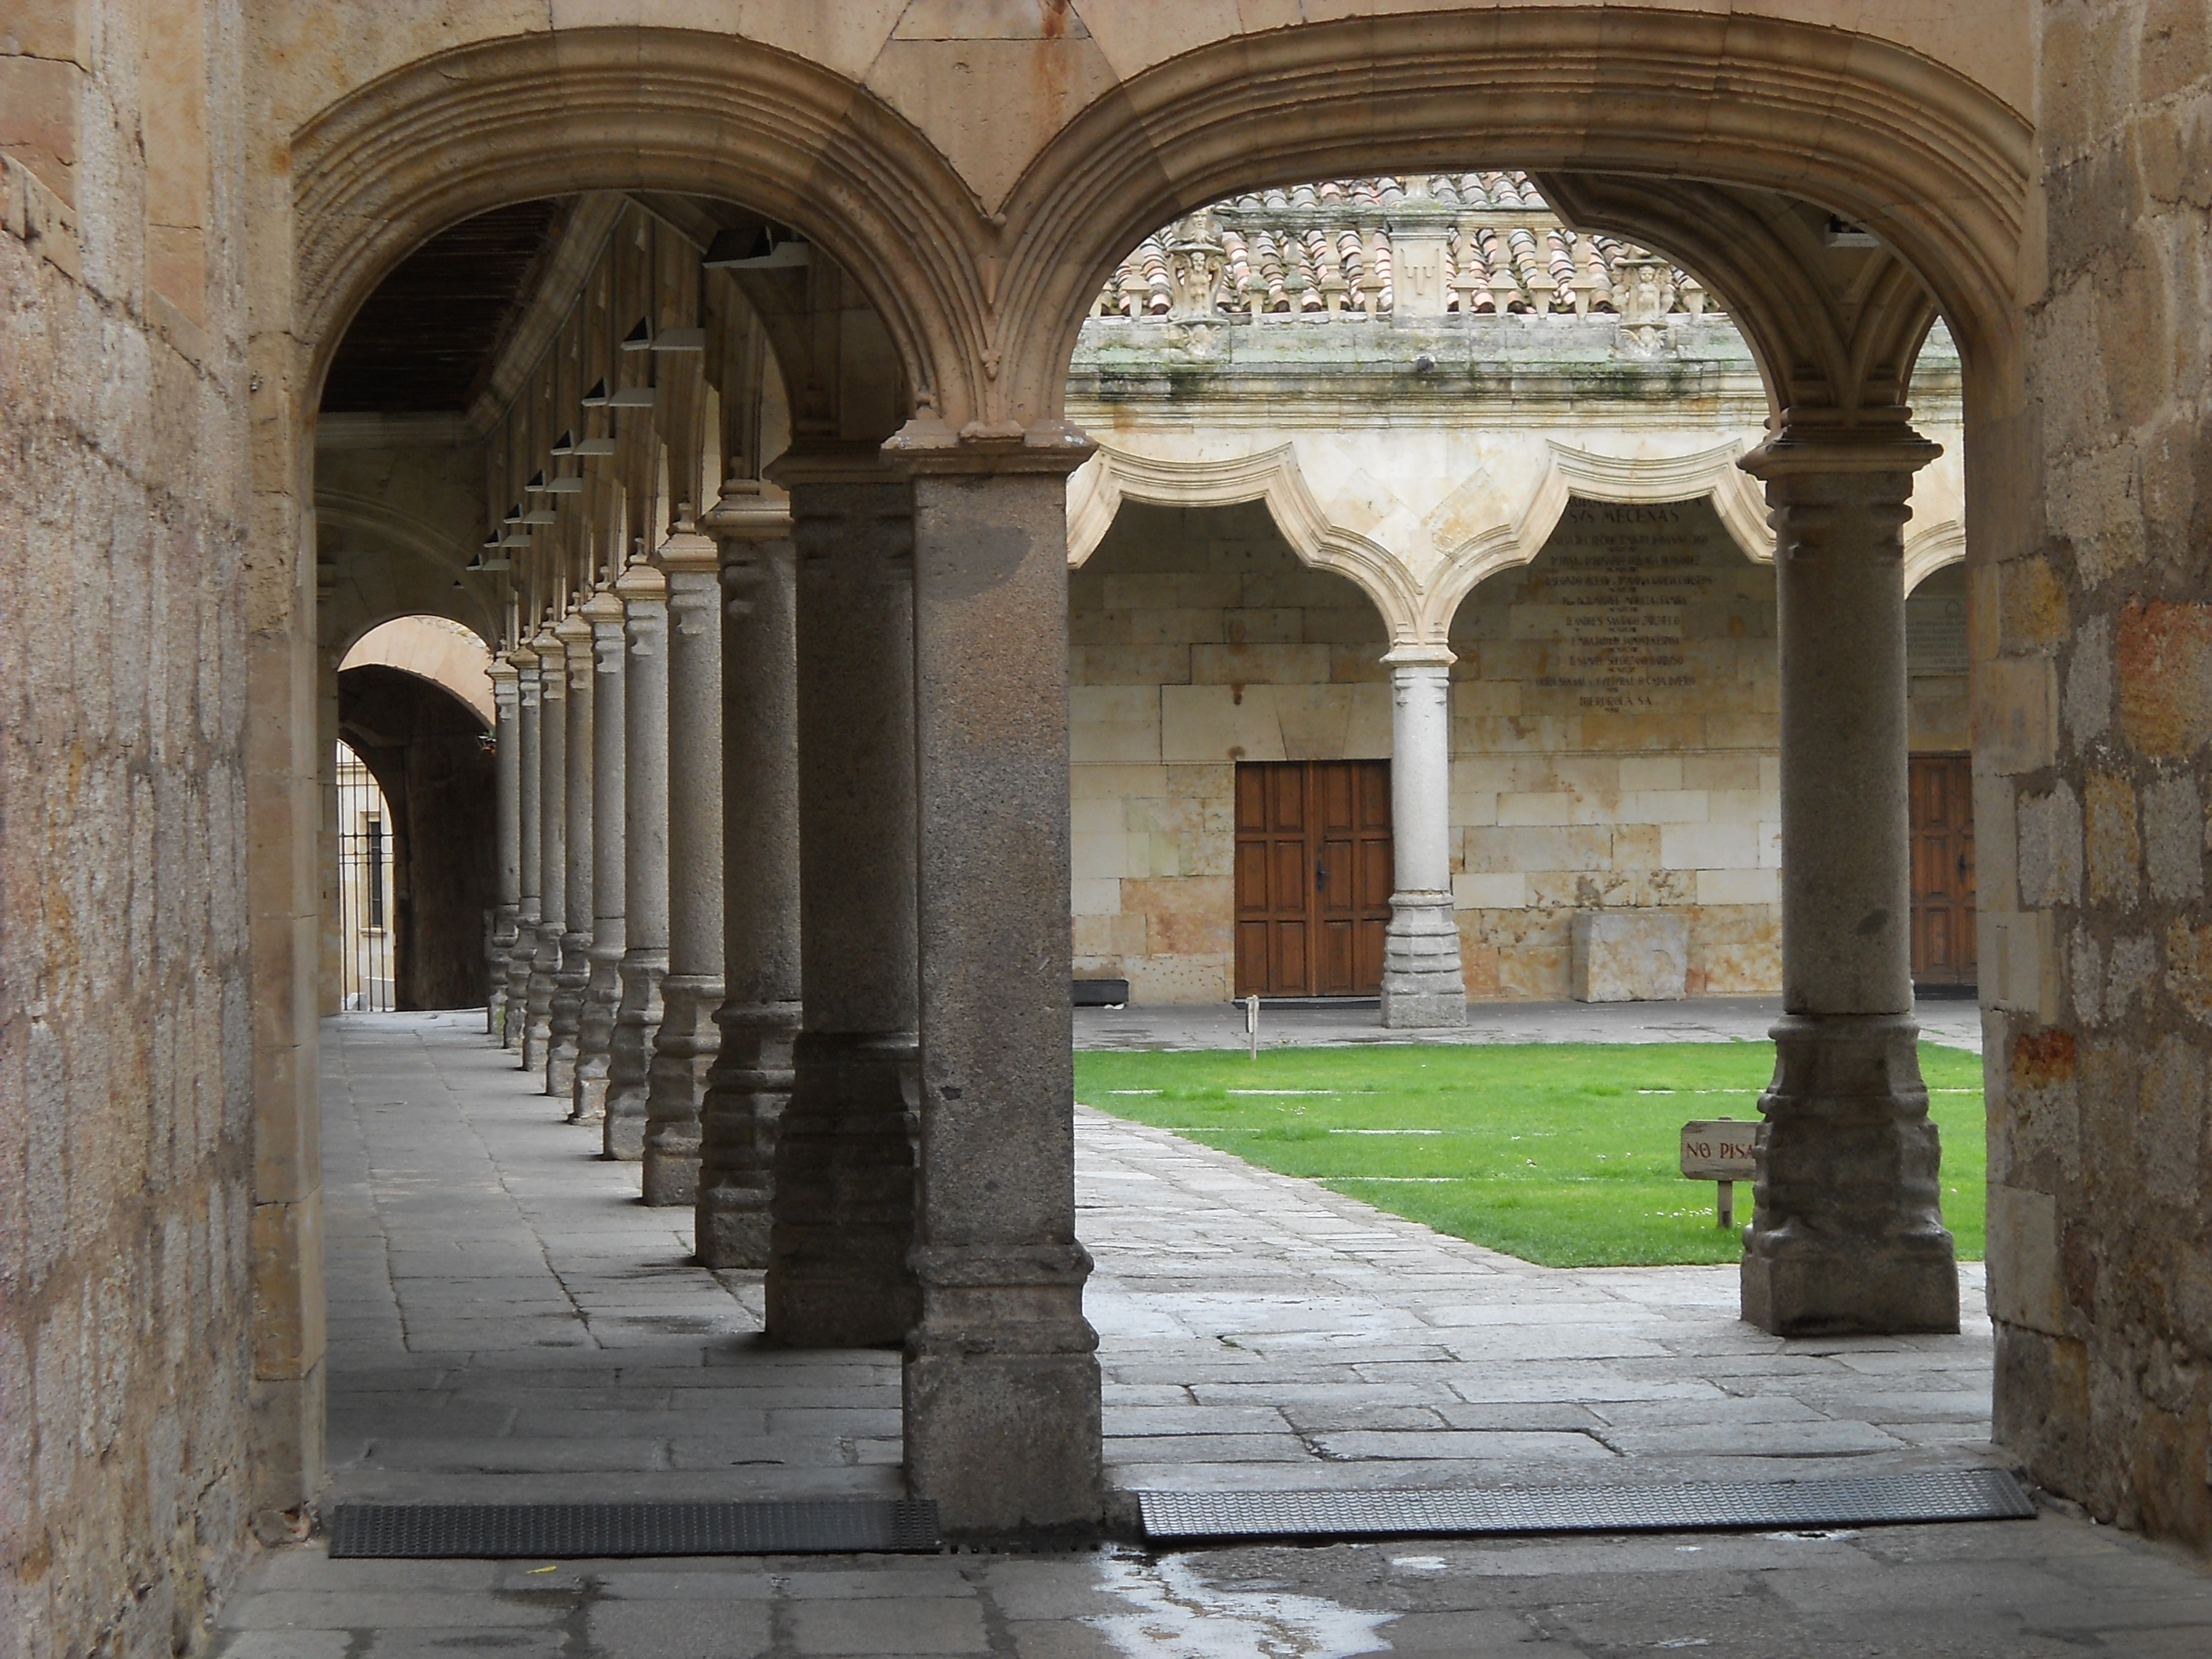 File:Salamanca universidad claustro Escuela Menores.jpg ... - photo#32